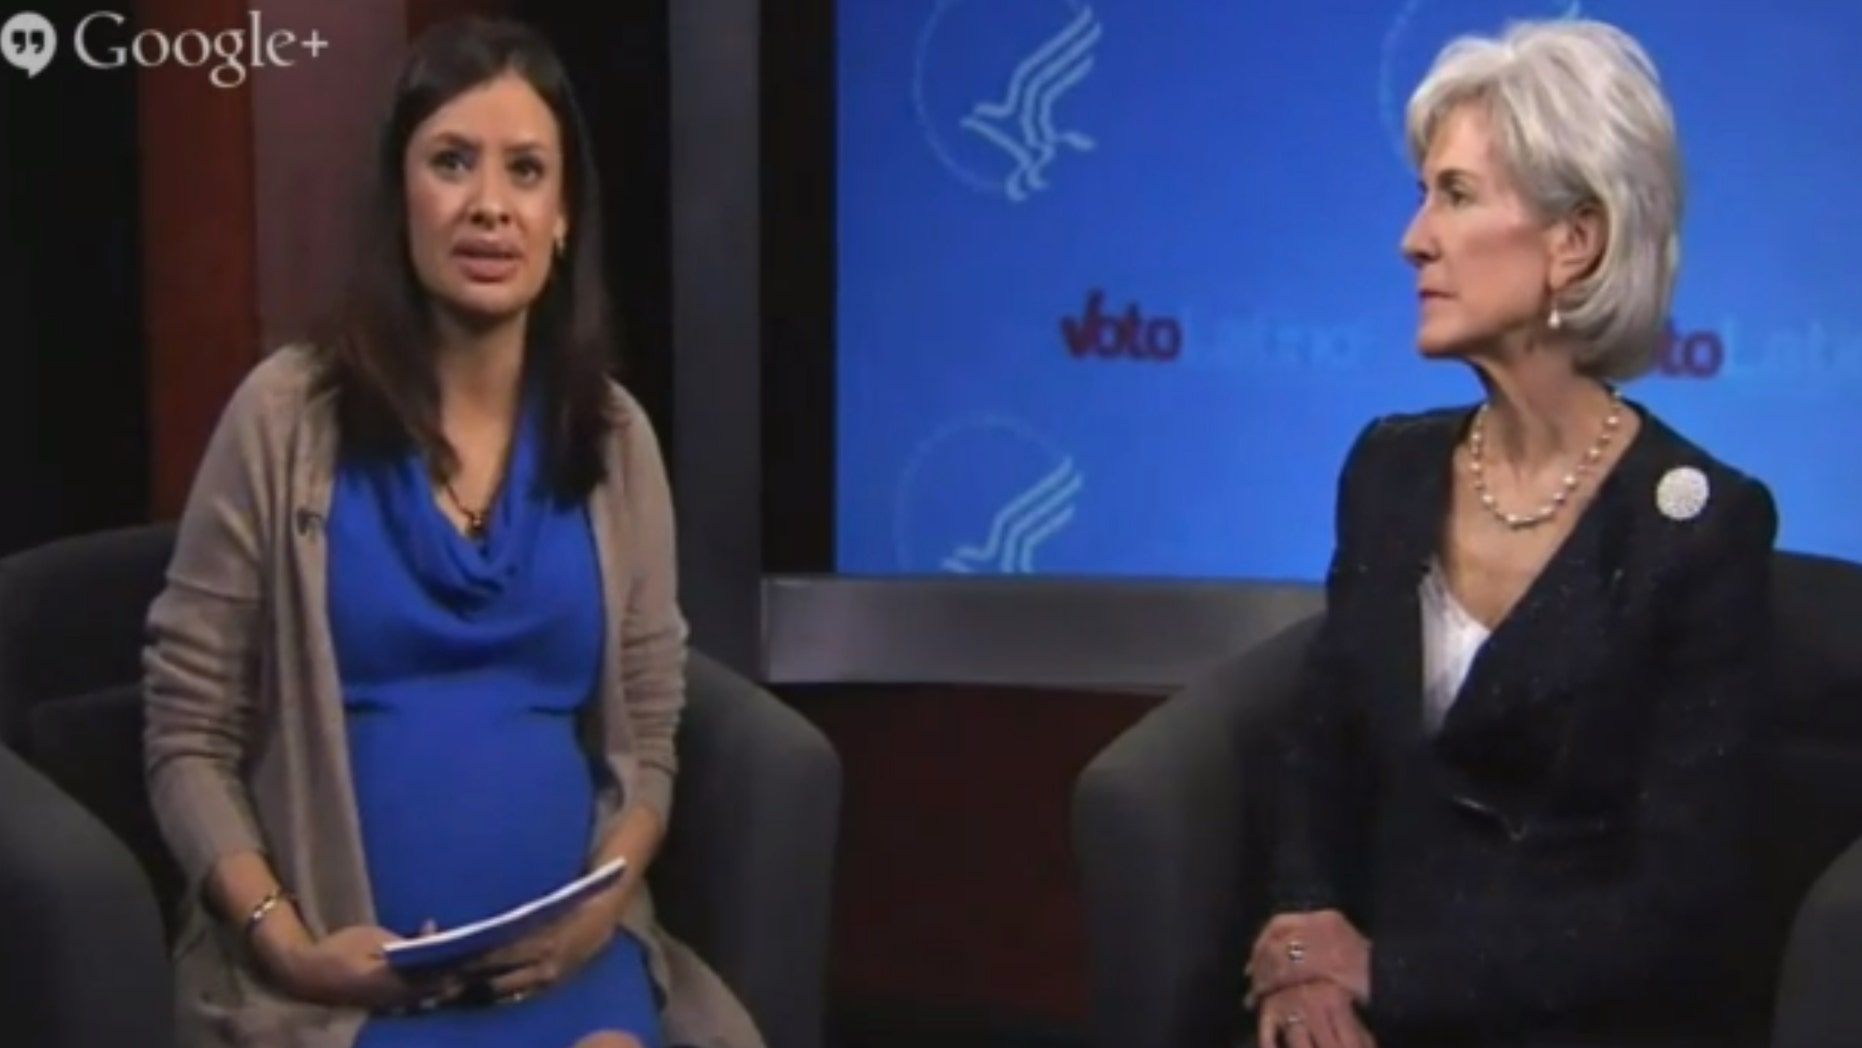 Health and Human Services head Kathleen Sebelius, right, with Voto Latino President and CEO, María Teresa Kumar, during their Thursday afternoon Google Hangout.